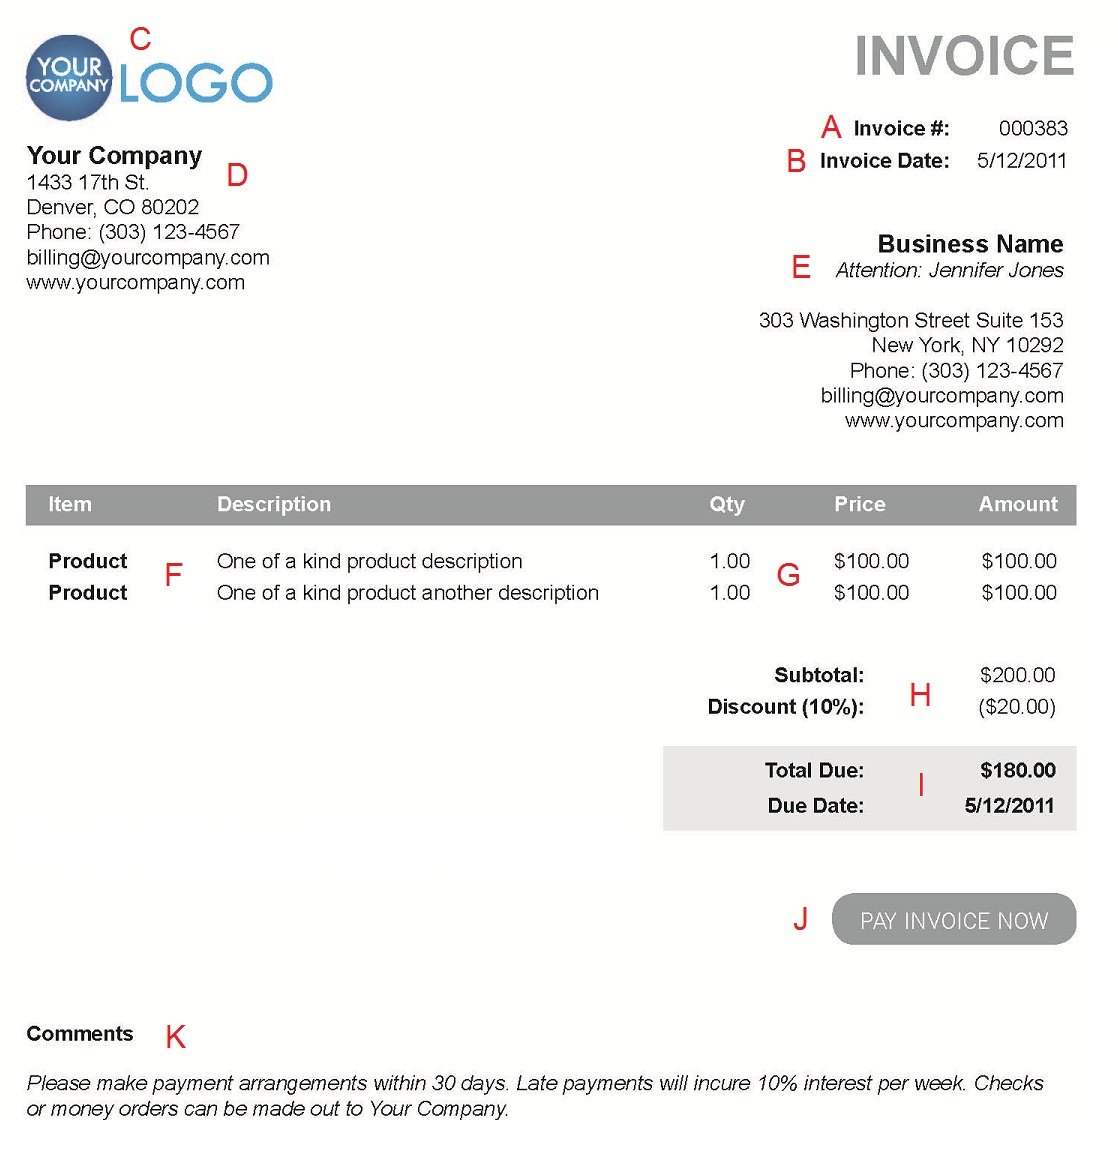 Coachoutletonlineplusus  Gorgeous The  Different Sections Of An Electronic Payment Invoice With Foxy A  With Attractive Invoice Freelance Template Also How To Write And Invoice In Addition Indian Tax Invoice Software Free Download And Invoice Template Photography As Well As Request Invoice Additionally Commercial Invoice For Shipping From Paysimplecom With Coachoutletonlineplusus  Foxy The  Different Sections Of An Electronic Payment Invoice With Attractive A  And Gorgeous Invoice Freelance Template Also How To Write And Invoice In Addition Indian Tax Invoice Software Free Download From Paysimplecom